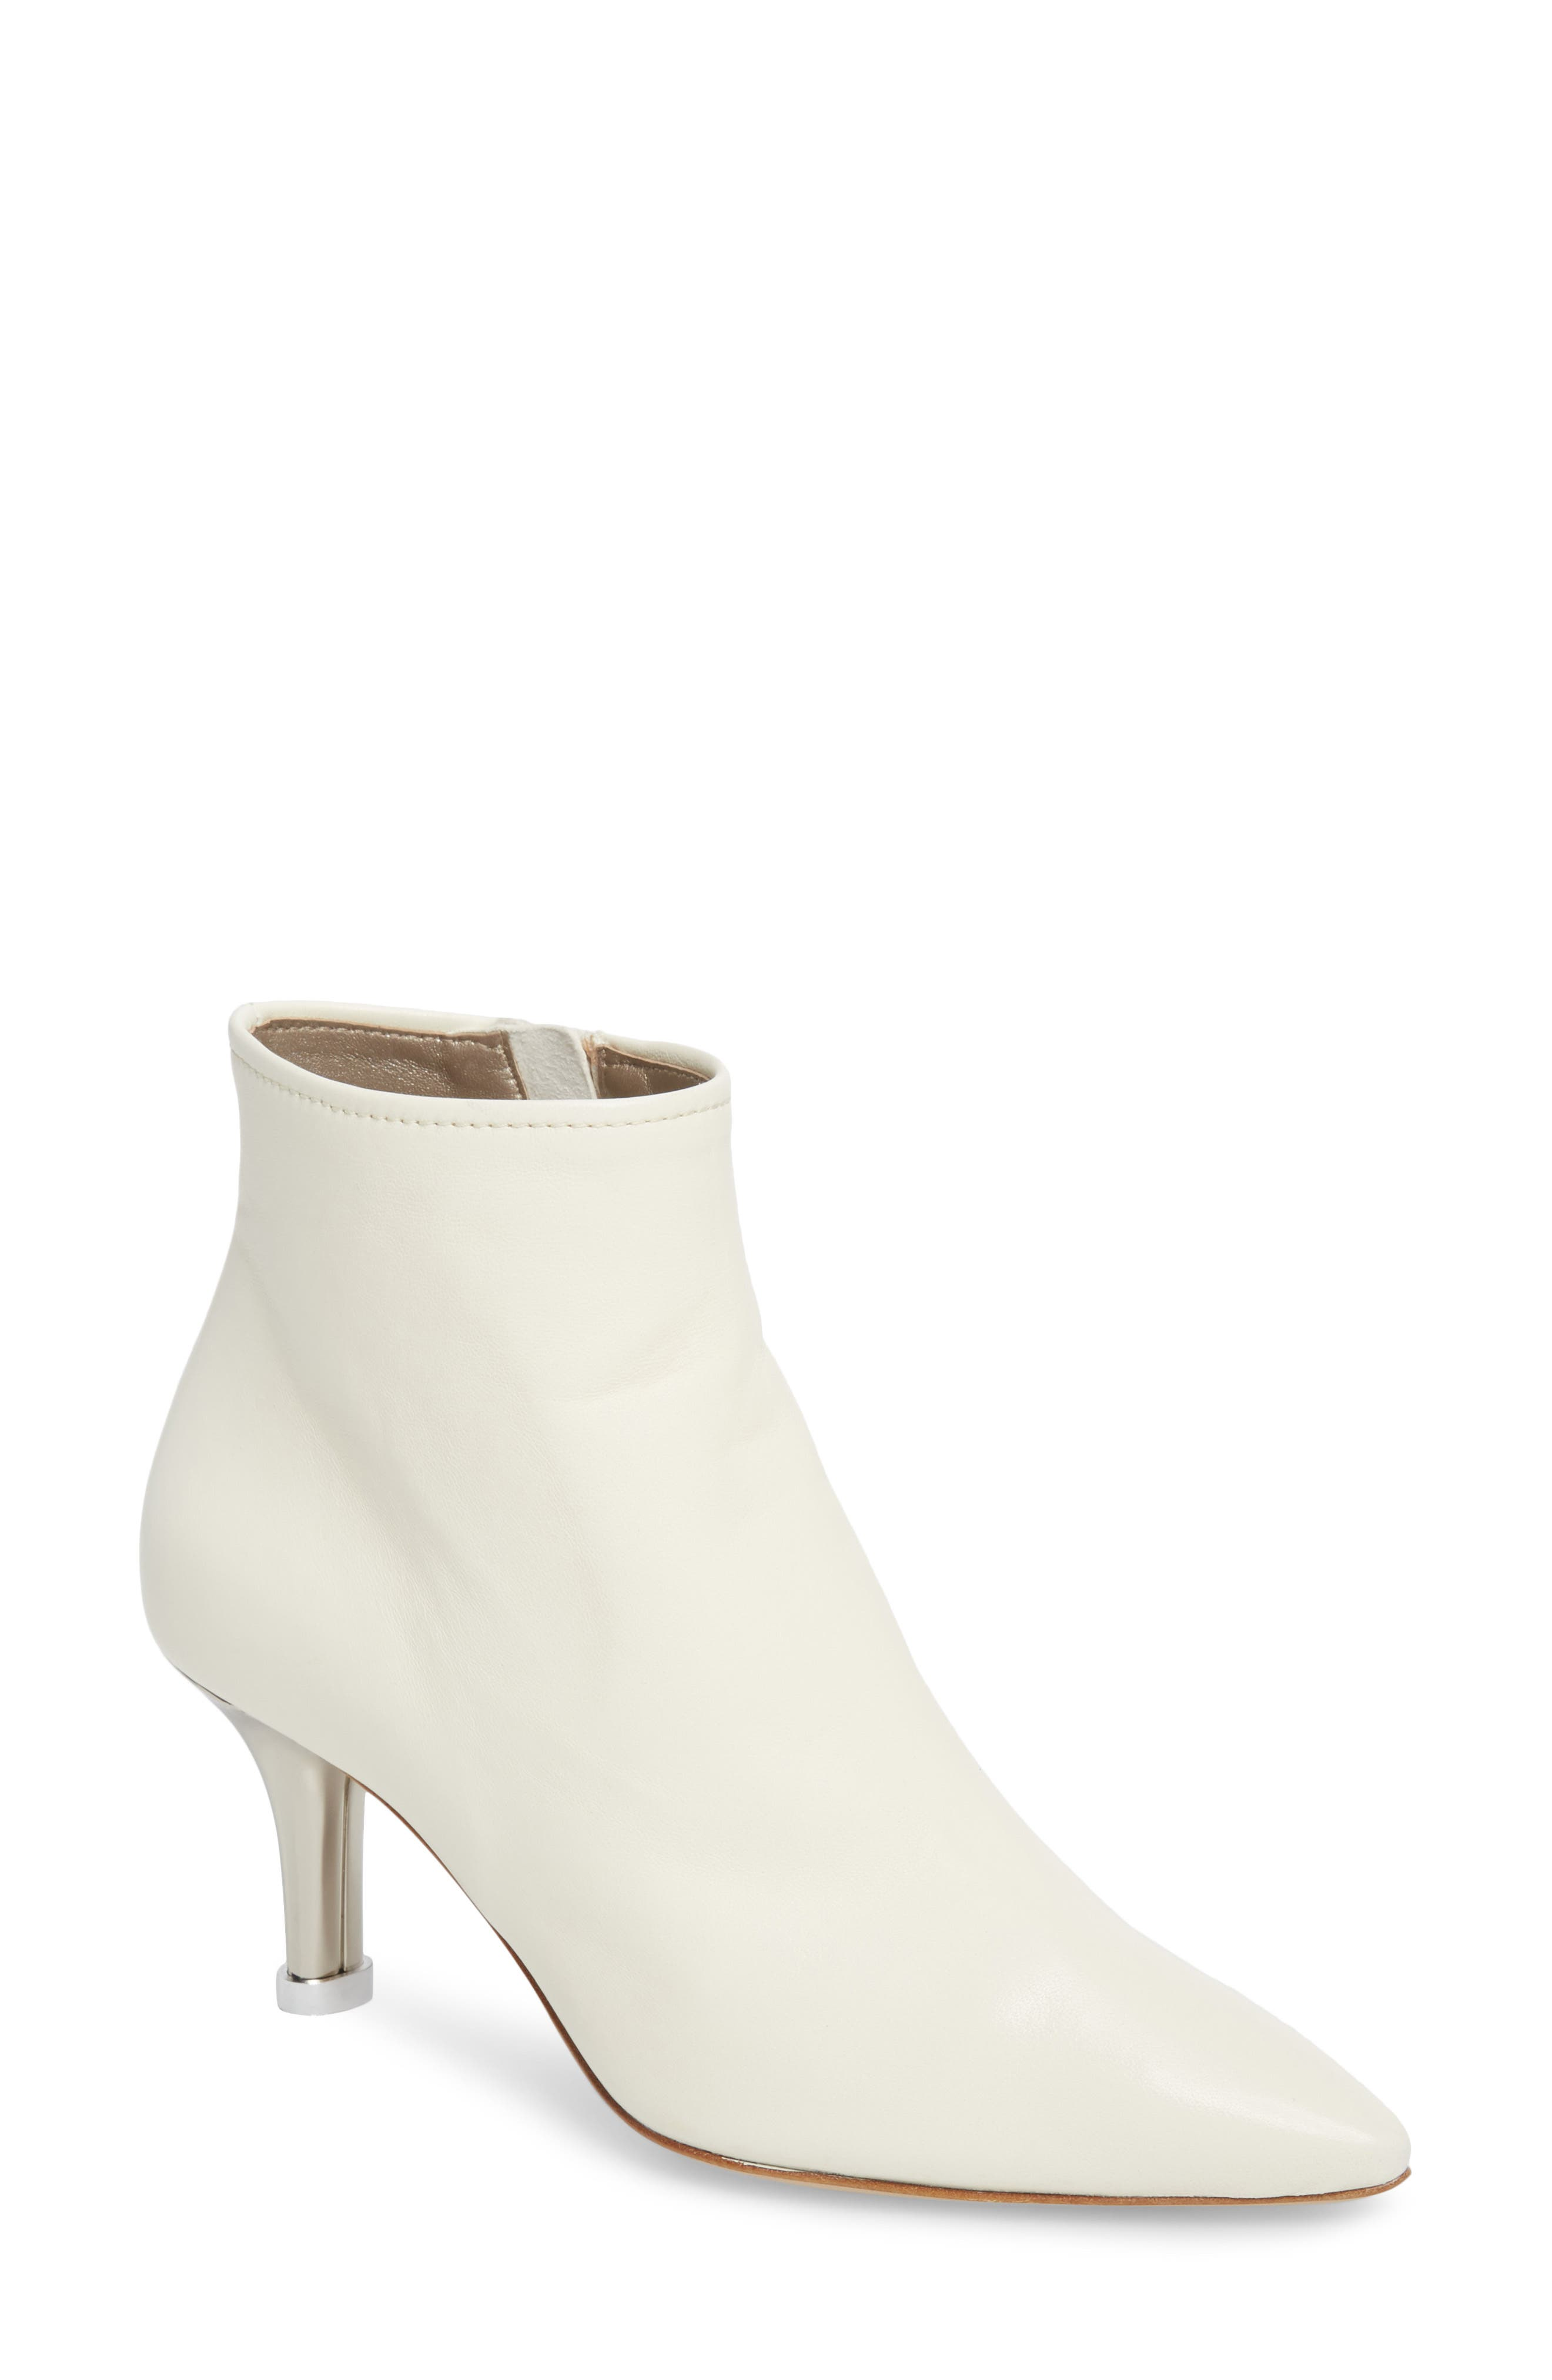 AGL Summer Bootie, Main, color, 101